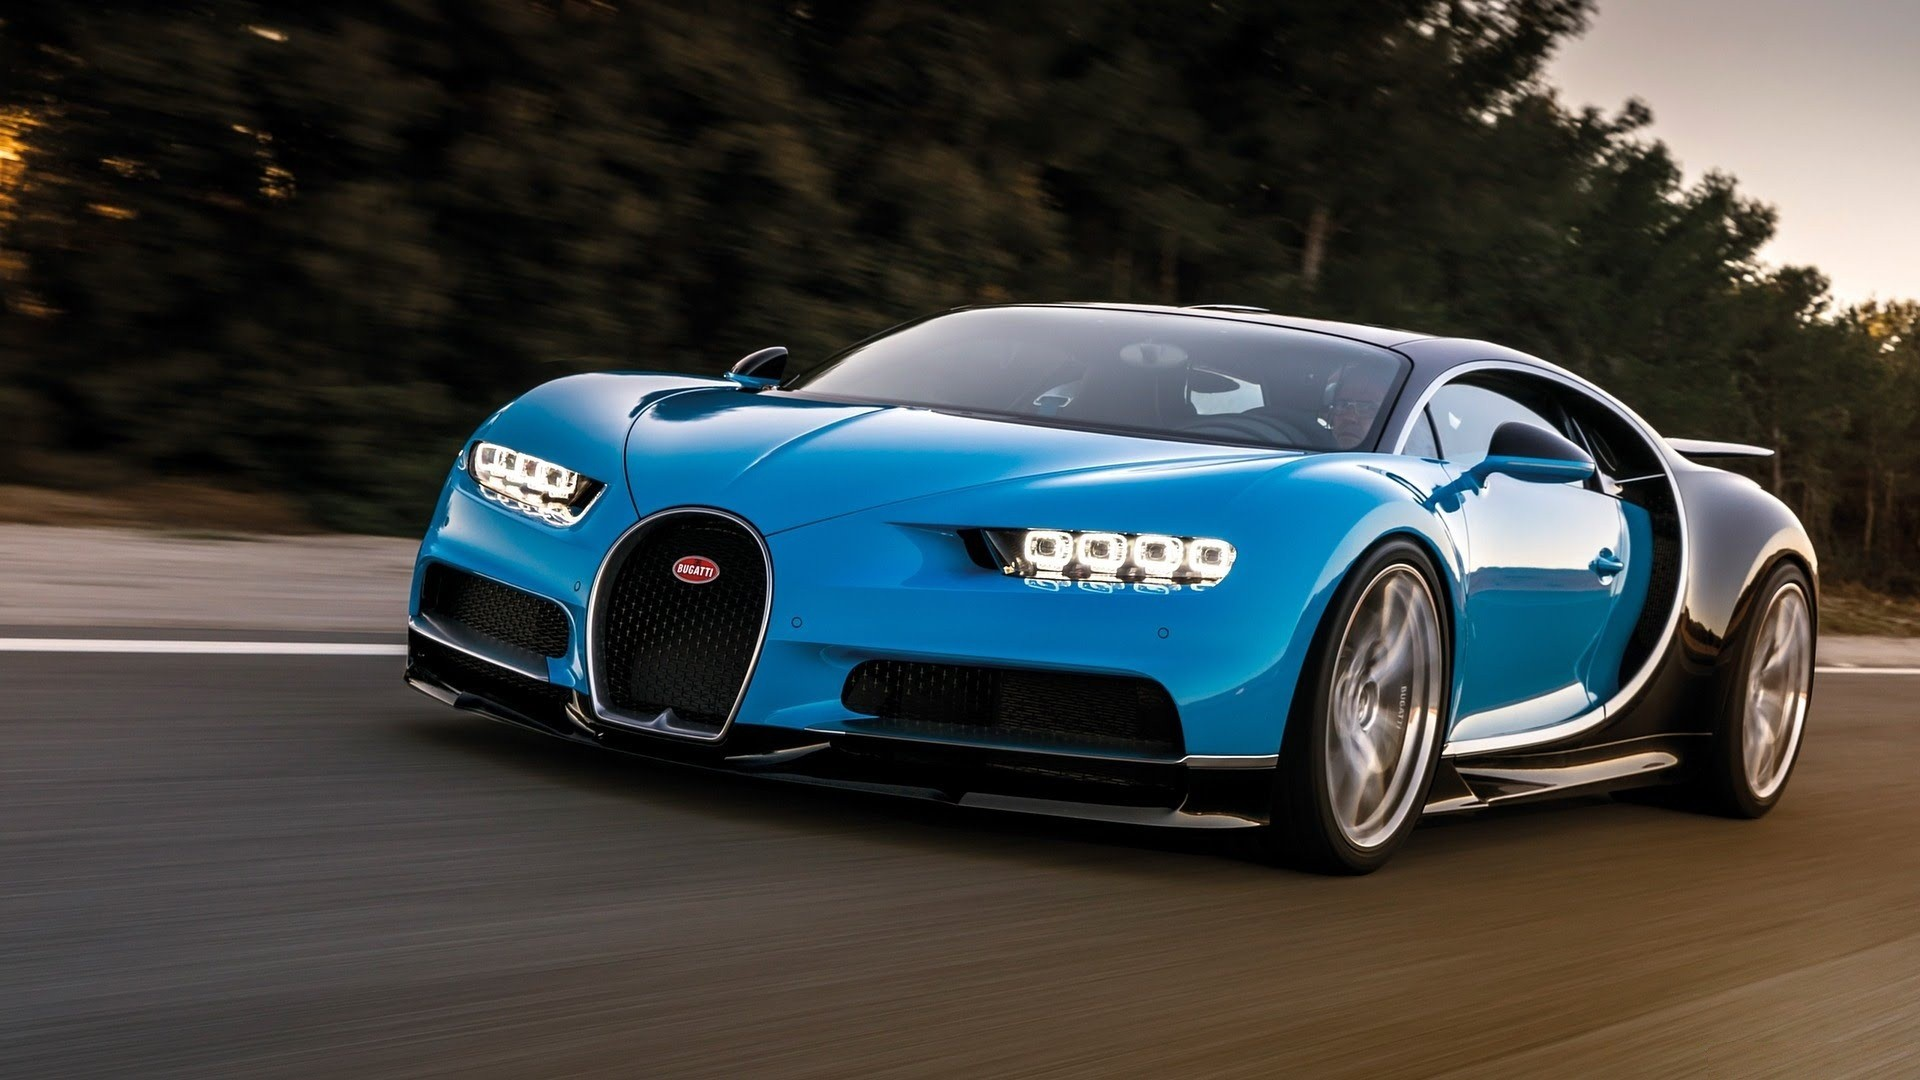 Bugatti Wallpapers Wallpapers All Superior Bugatti Wallpapers Backgrounds Wallpapersplanet Net